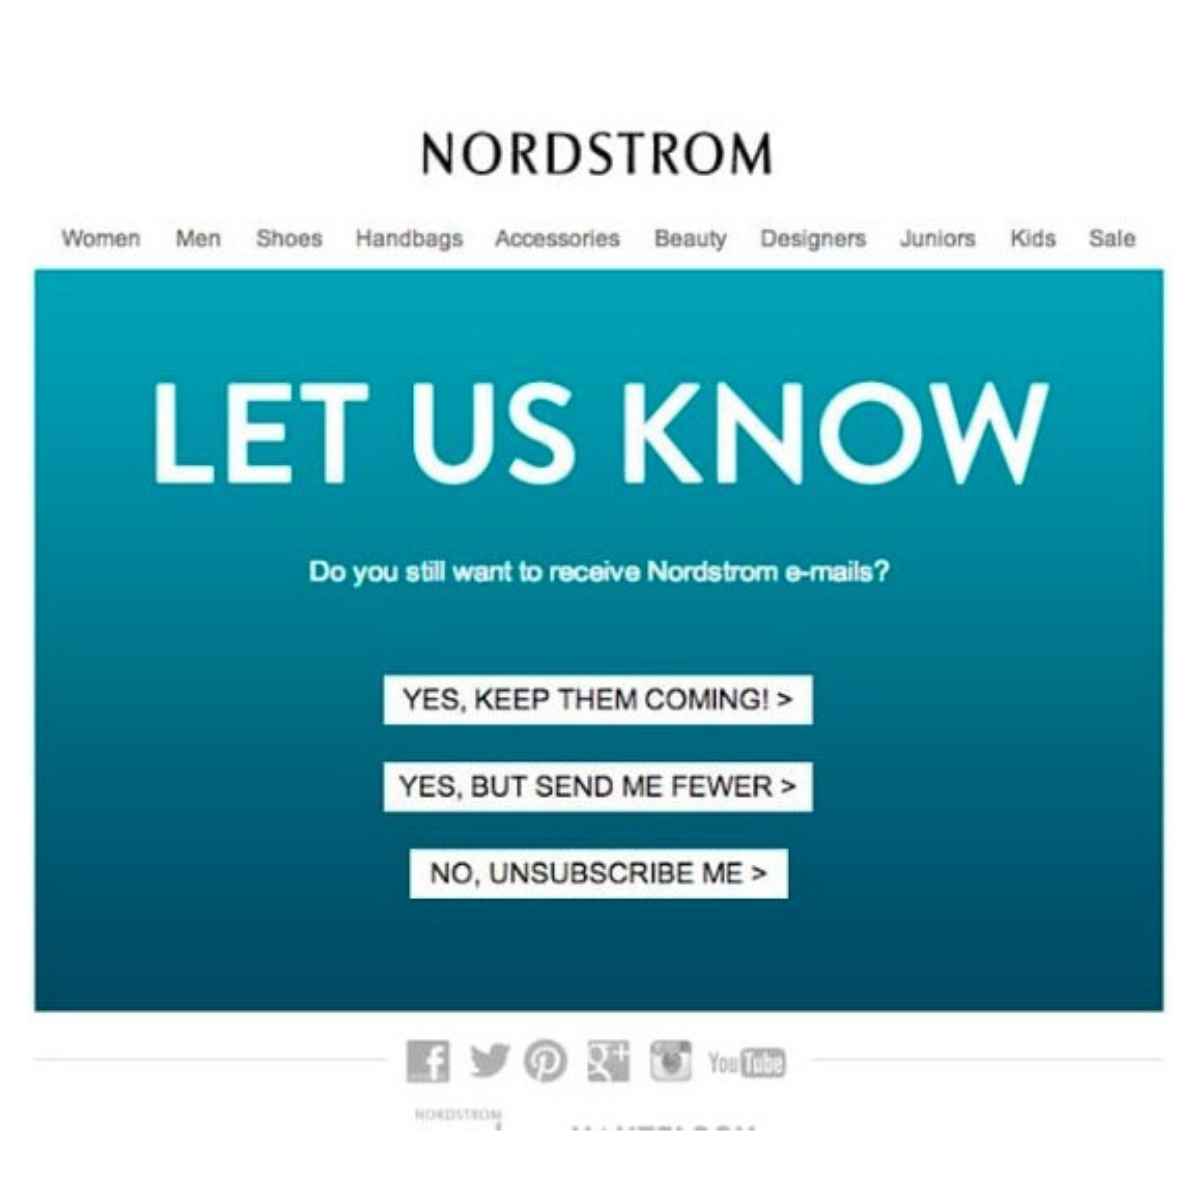 nordstrom-win-back-campaign-example